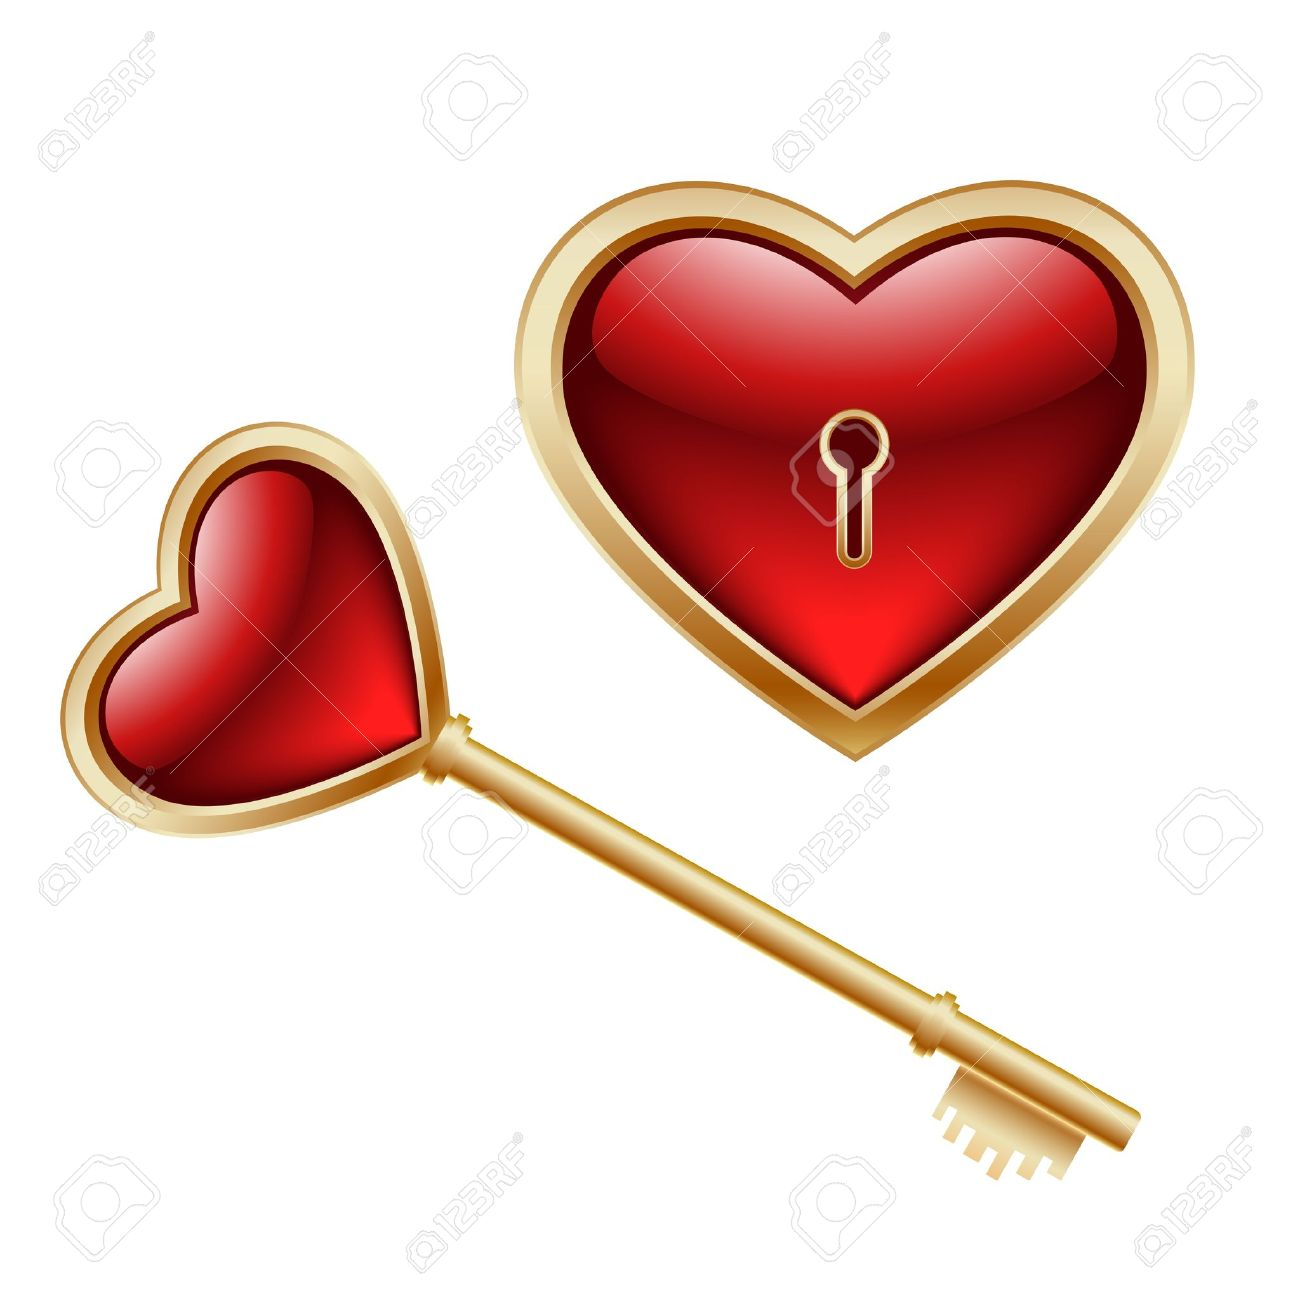 Golden key with a little heart inside and lock as heart Stock Vector - 11910296